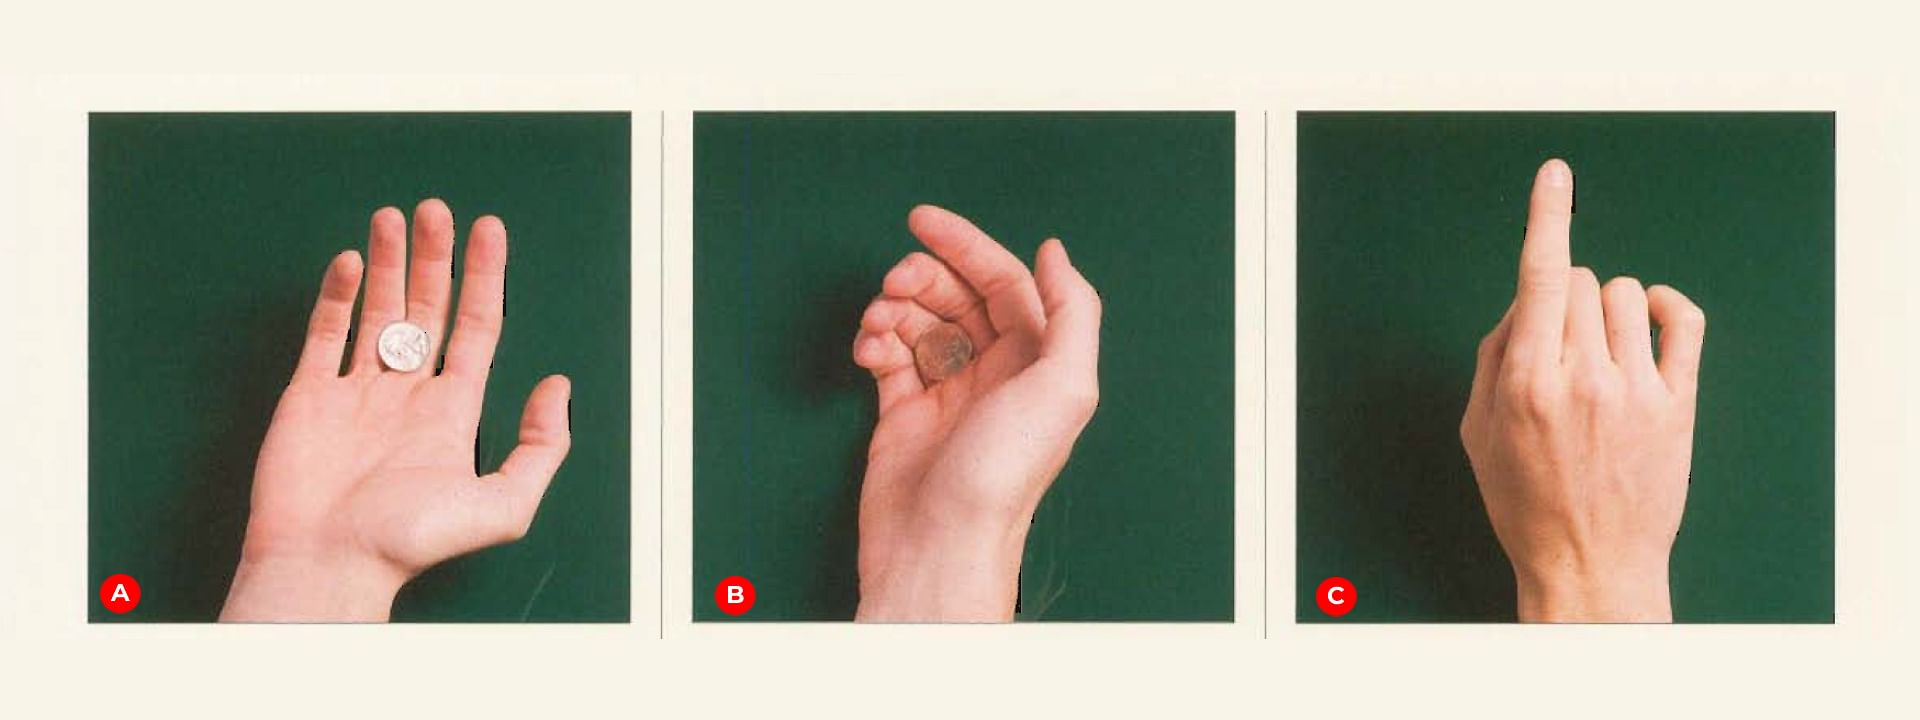 Magician joshua jay shows how to do a beginner coin magic sleight of hand move known as the finger palm